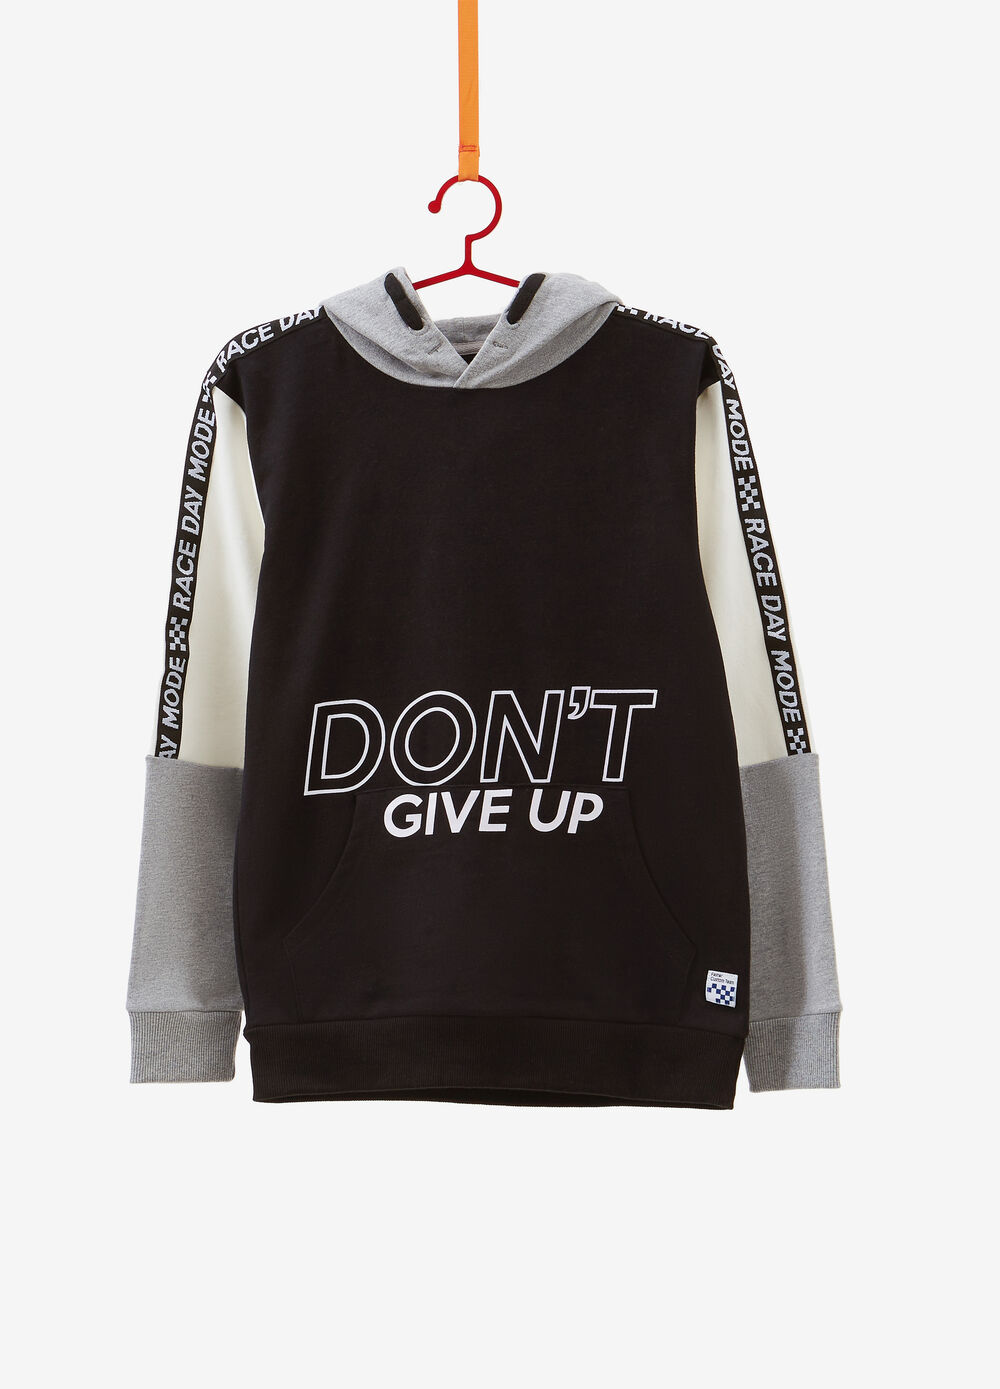 Cotton sweatshirt with inserts and printed lettering